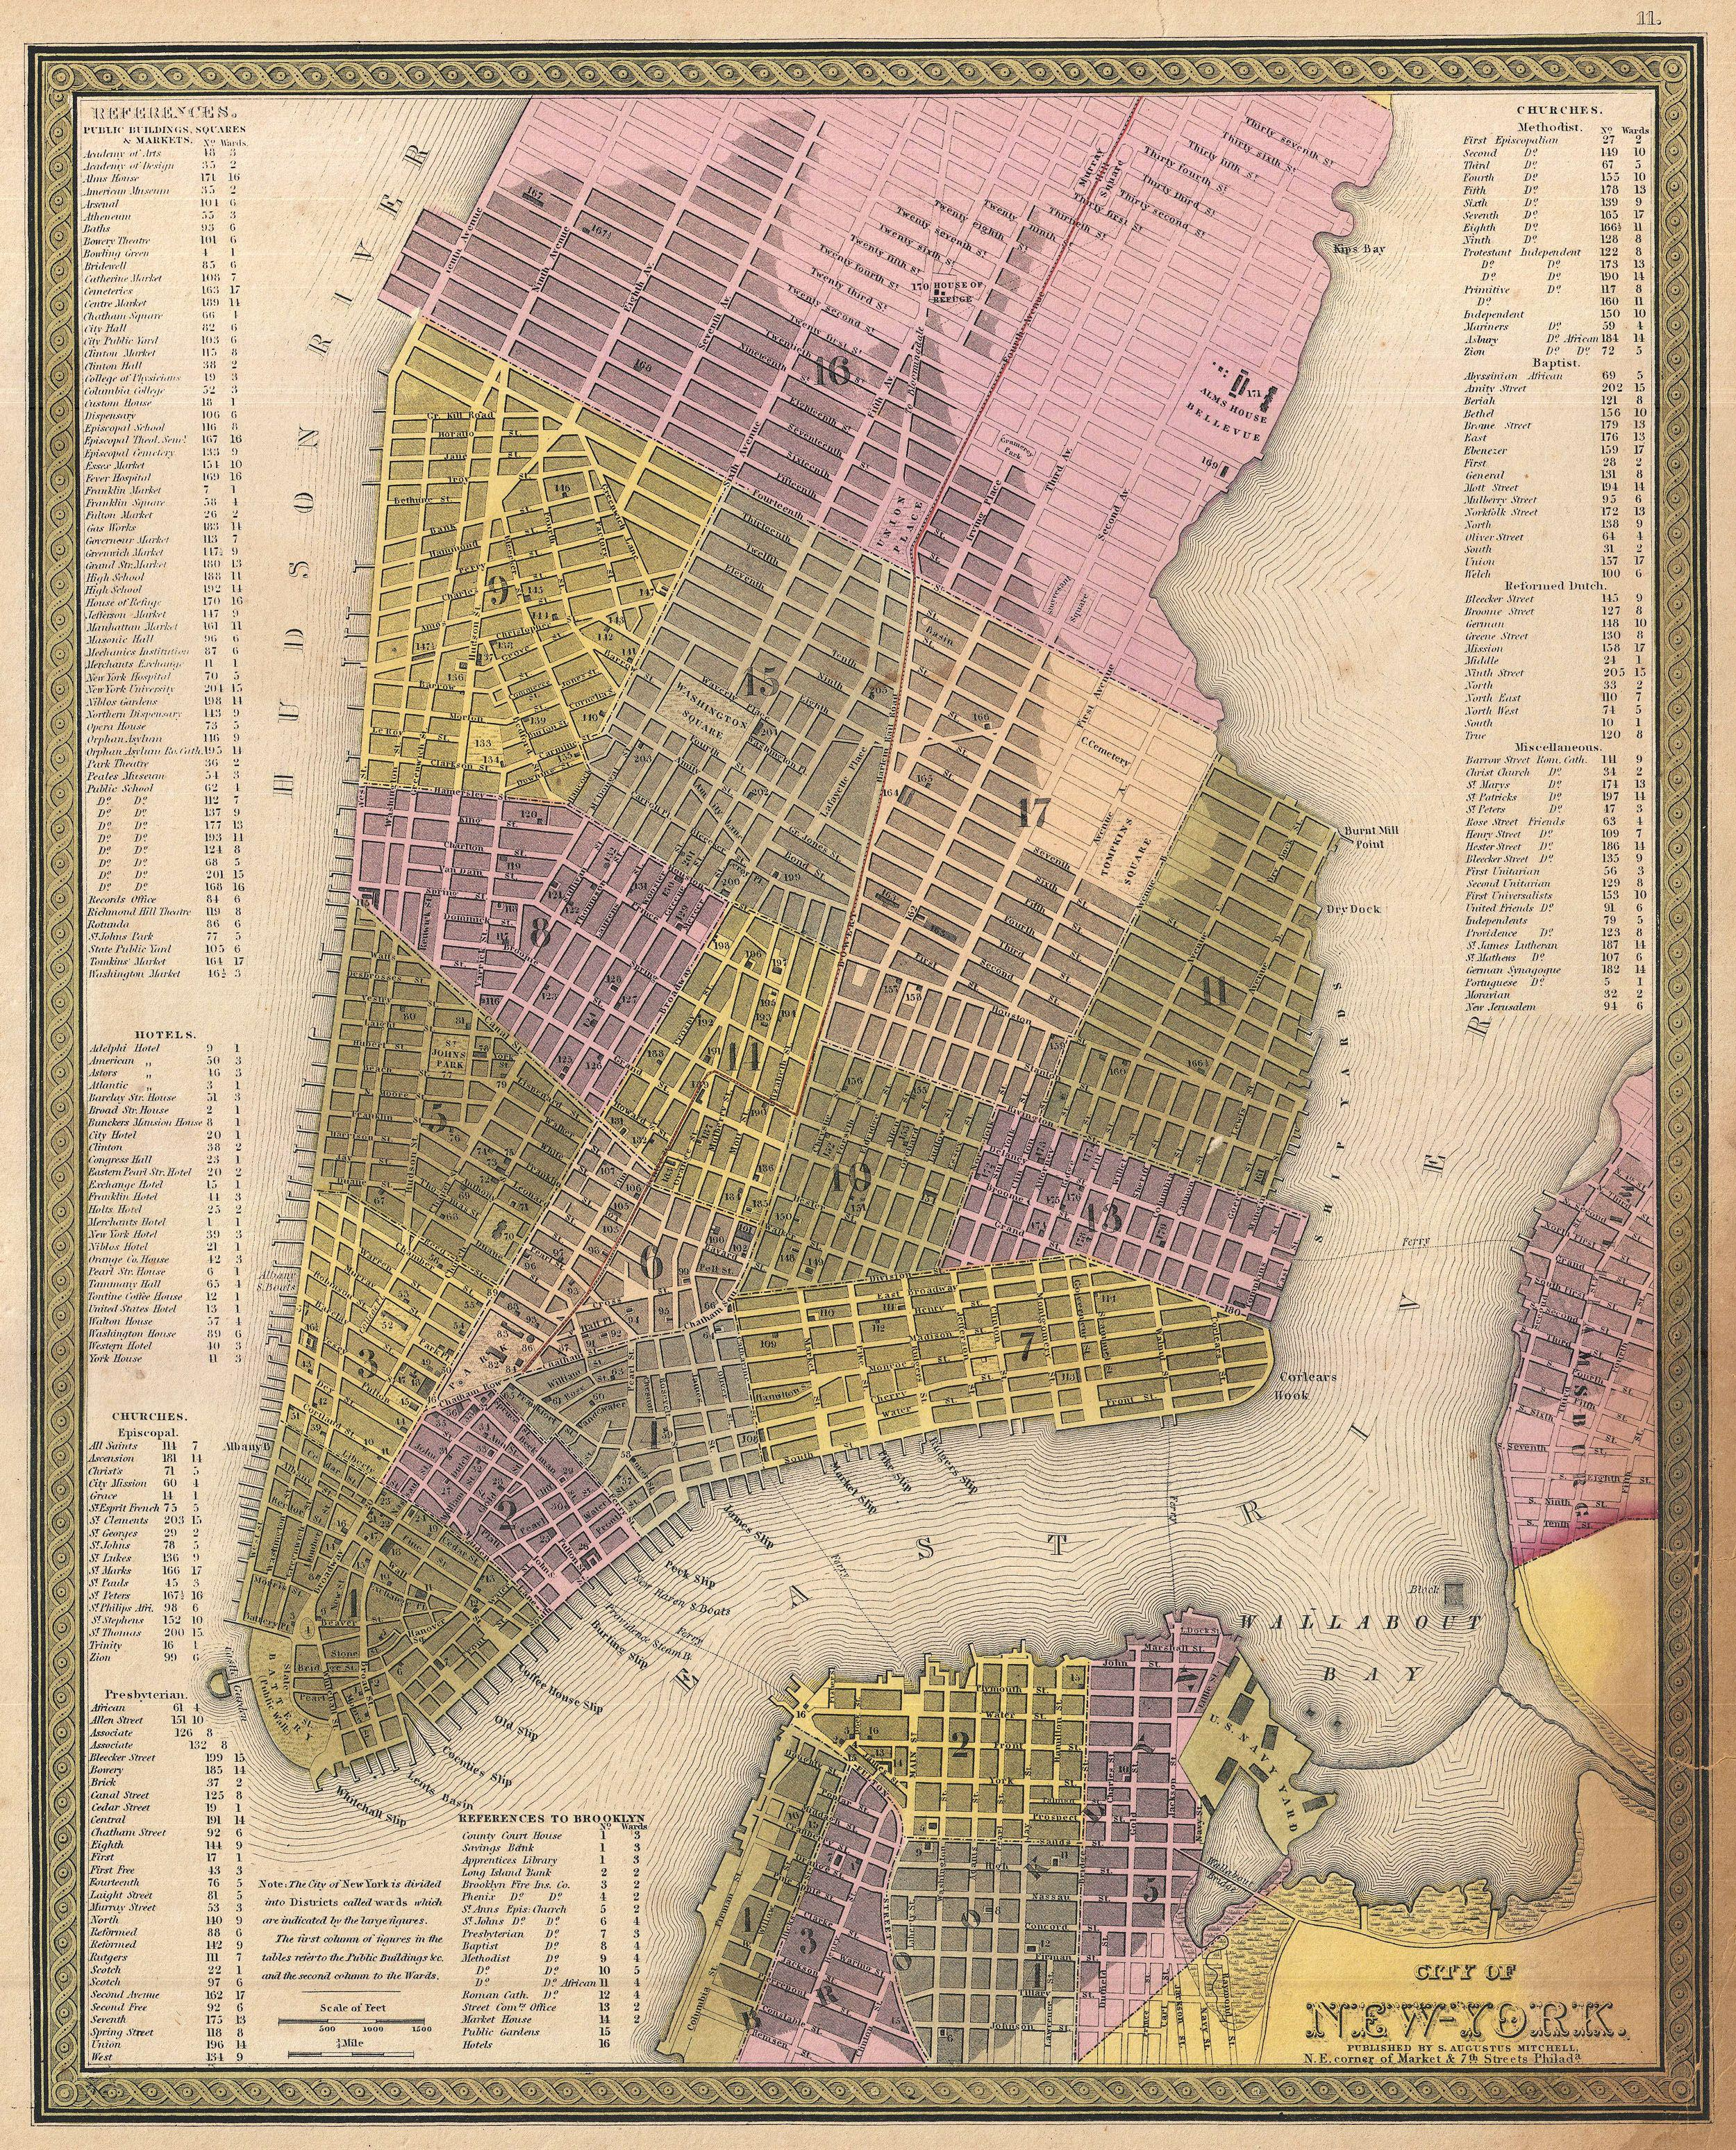 Map Of New York 1850.File 1850 Mitchell Map Of New York City Geographicus Newyorkcity